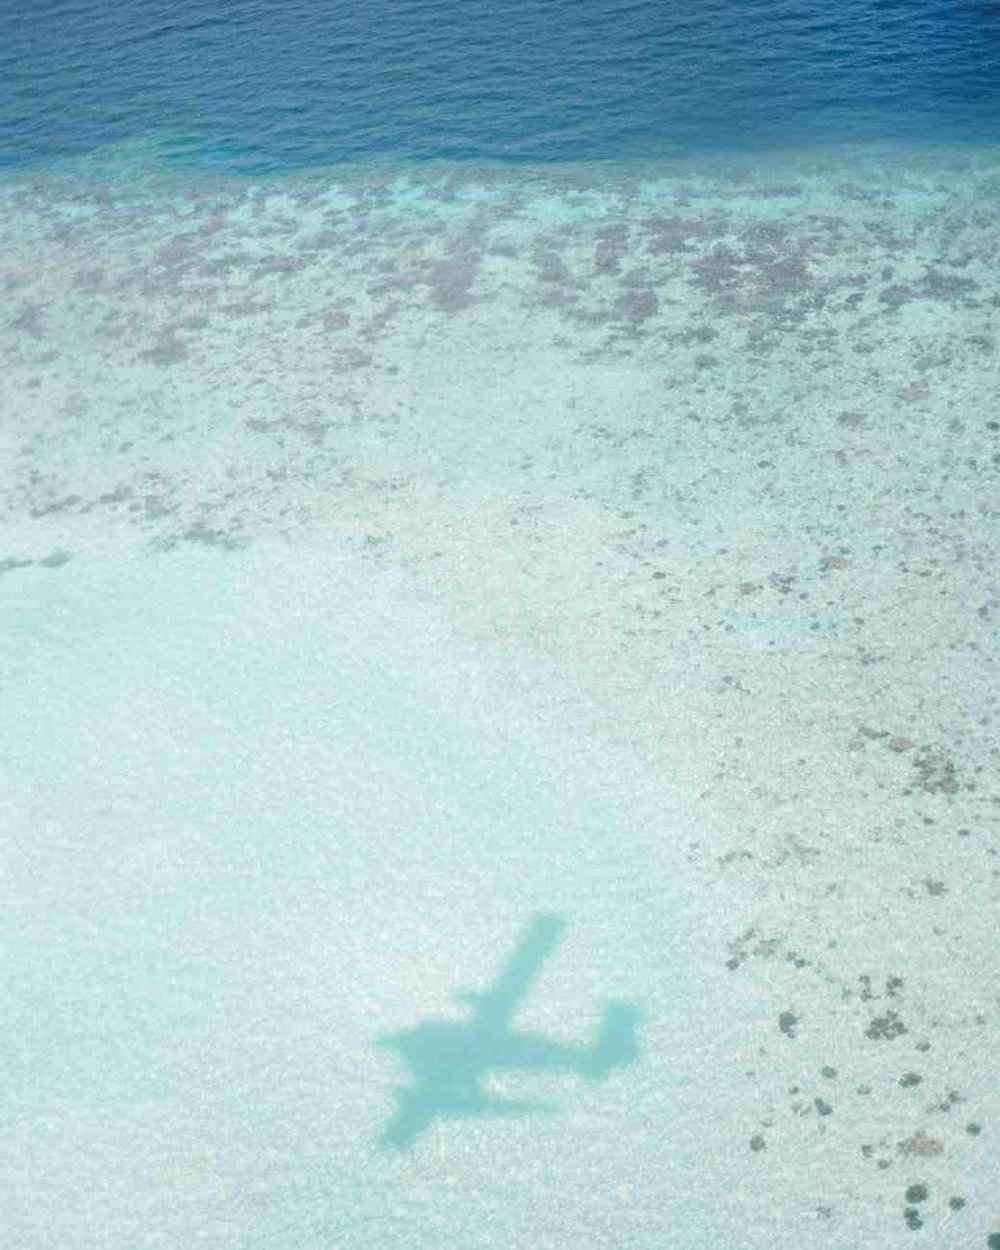 peony-richard-wedding-maldives-airplane-shadow-in-sand-0015-s112383_vert.jpg